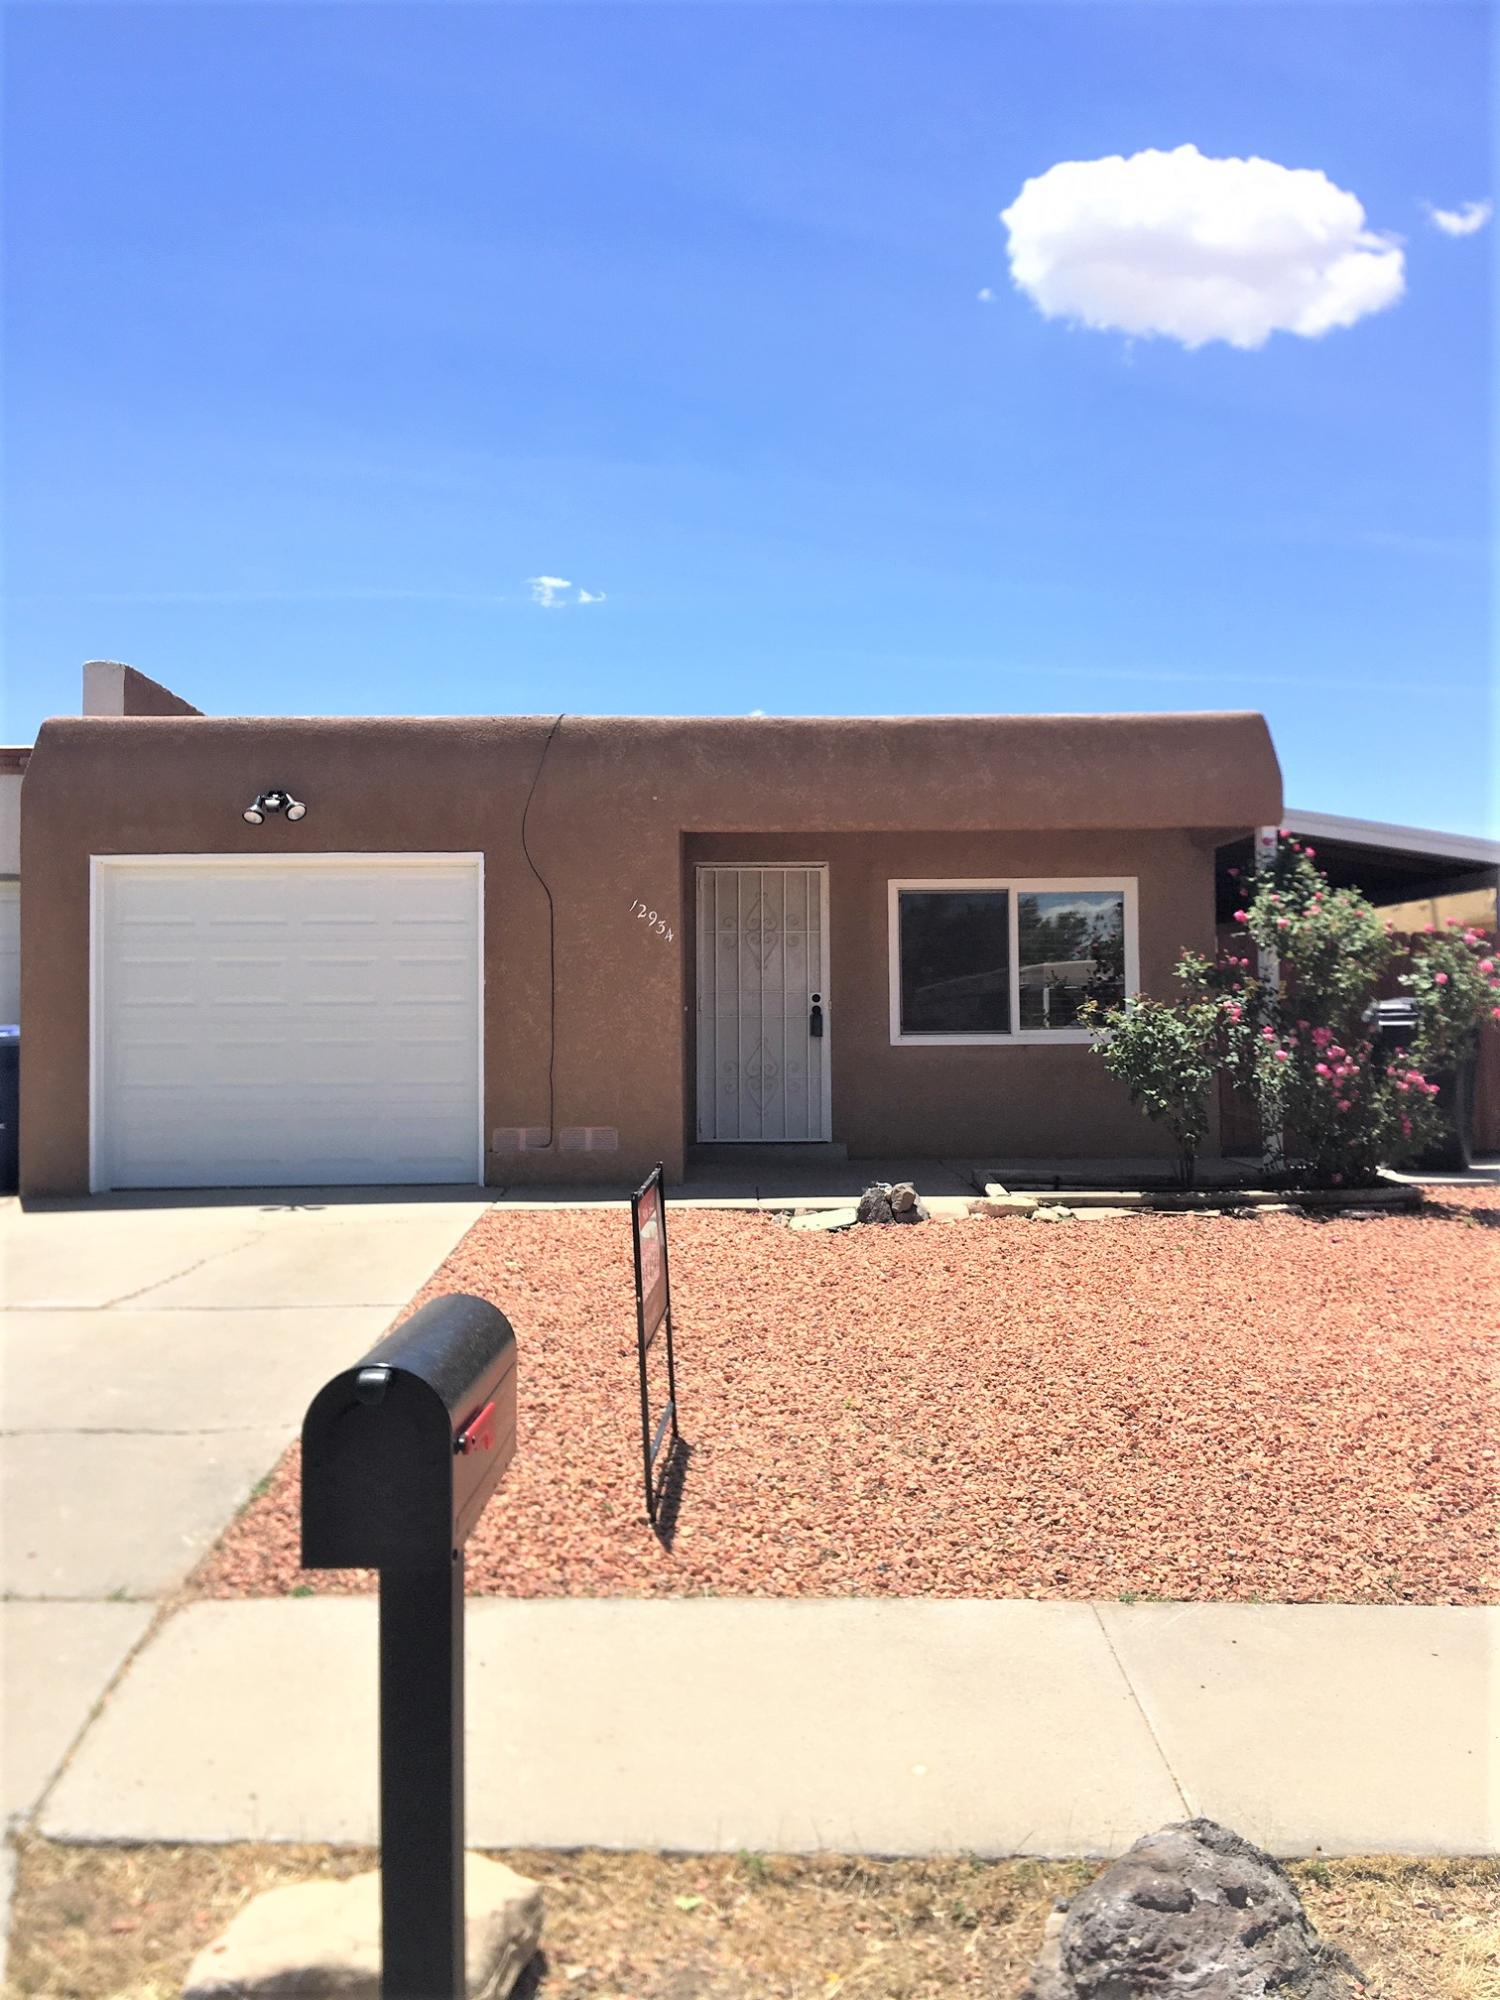 Sold in 1 Day but now Back on the Market with Inspections and Repairs Complete. Sweet Townhome with Pretty, Updated Kitchen with Loads of Cabinets, Pantry, Tile Flooring Thru-Out with Exception to 2 of the 3 Bedrooms which have Carpet. Enjoy the NIce Sized Living area and Dining Rm. The Master Includes a 3/4 Bath. Step Out to a Good Sized Covered Patio for Entertaining. Double Pane Vinyl Windows, Easy Maintenance Yards, Large 1 Car Garage All Freshly Painted. Back Door to Patio will be Painted White.